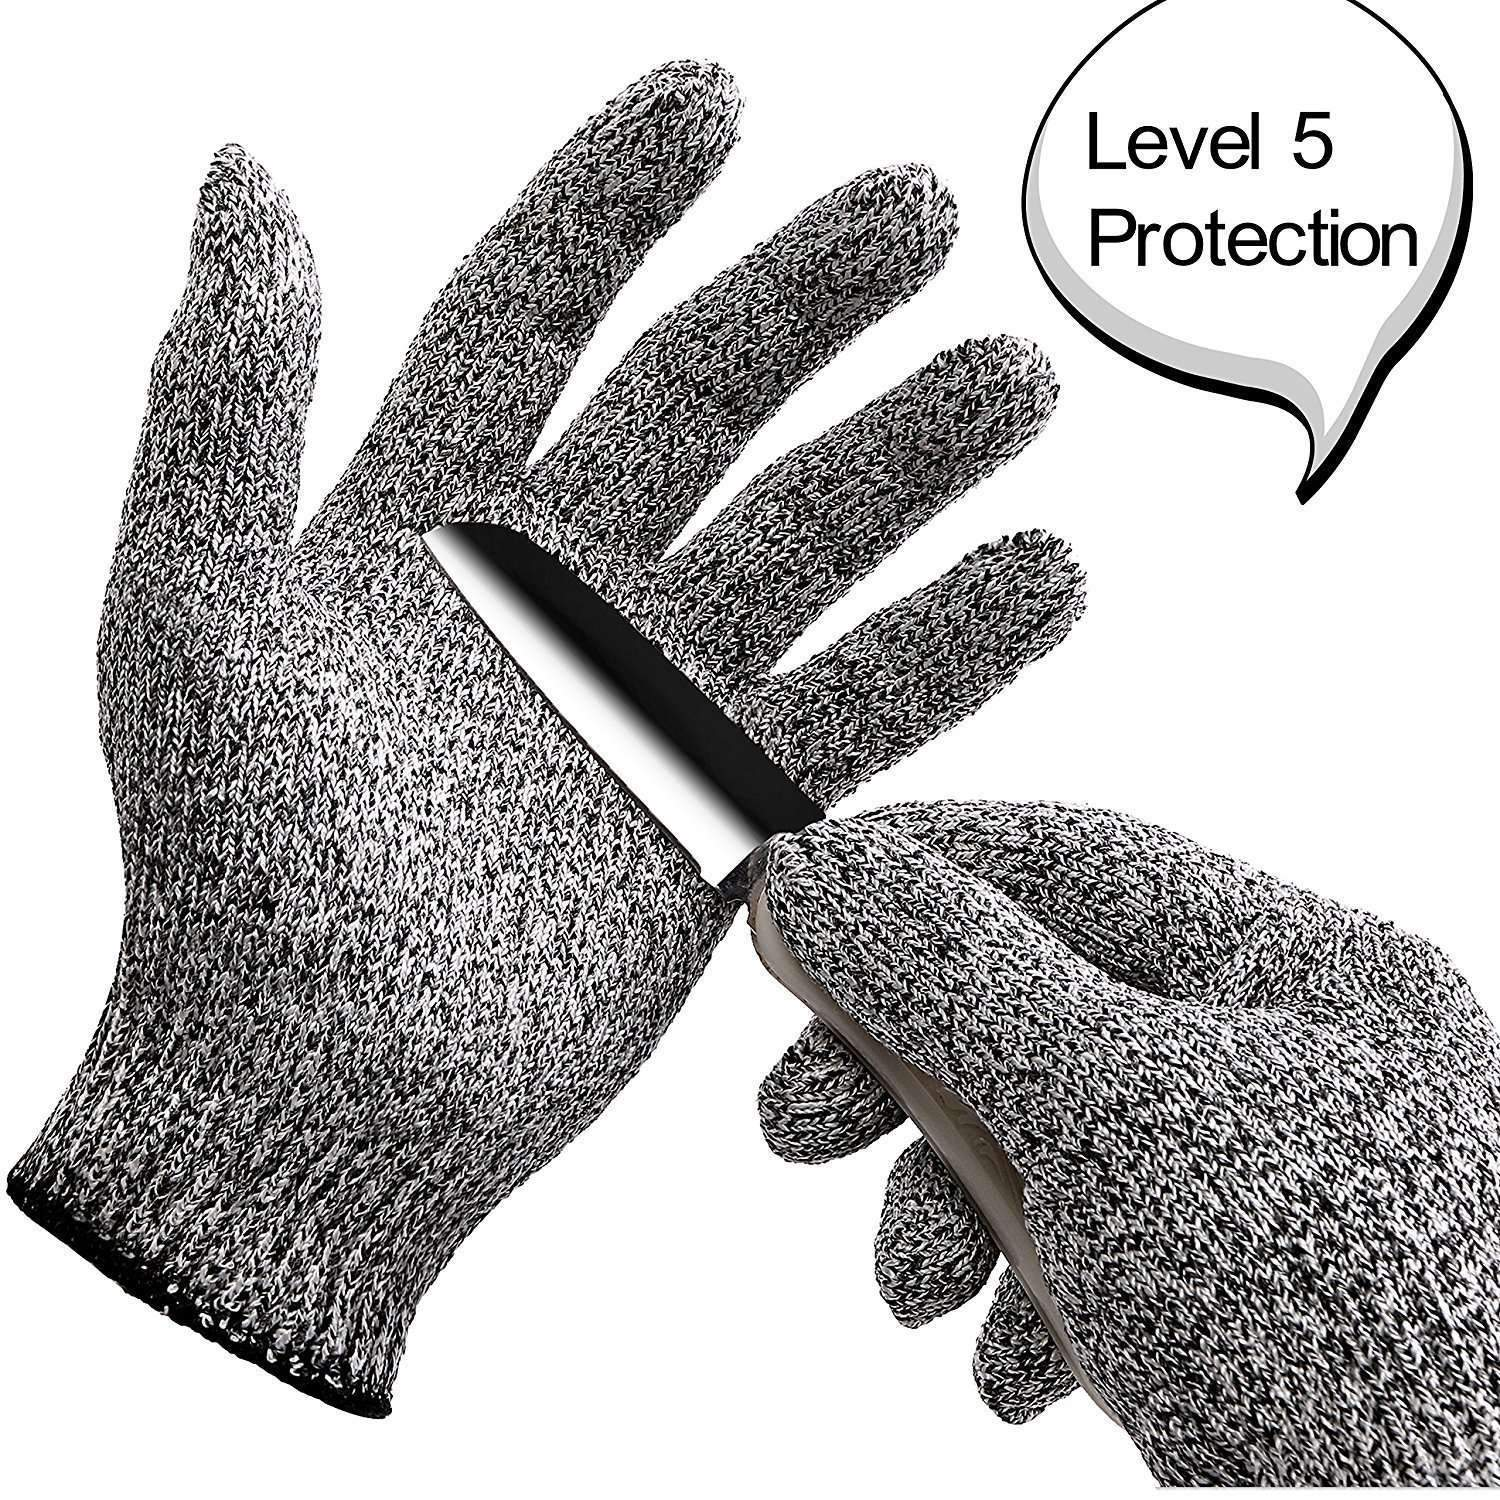 Ahmed gloves Safurance Resistant Gloves Kitchen Cut Food Protection High-Performance 5-Level Protection